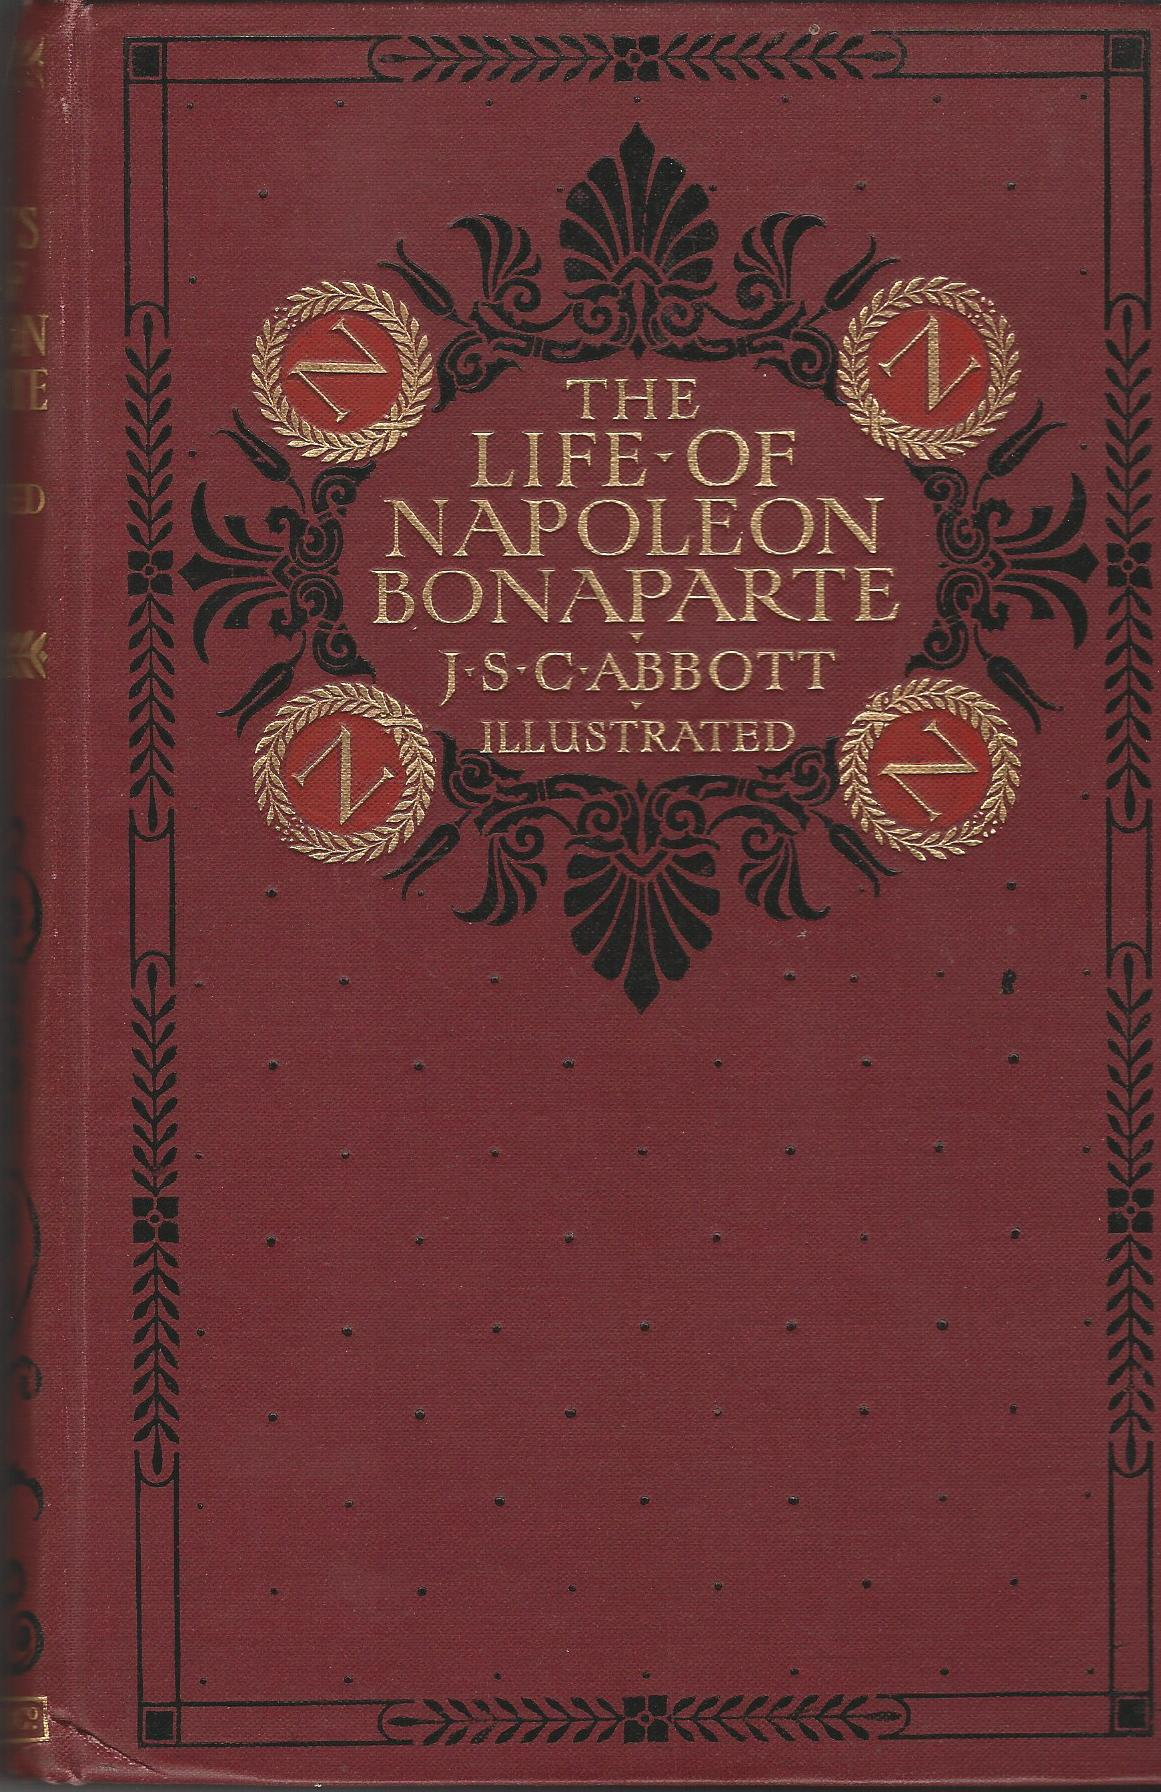 Image for The Life of Napoleon Bonaparte to which is added: A Sketch of the Life of the Late Emperor Napoleon the Third.